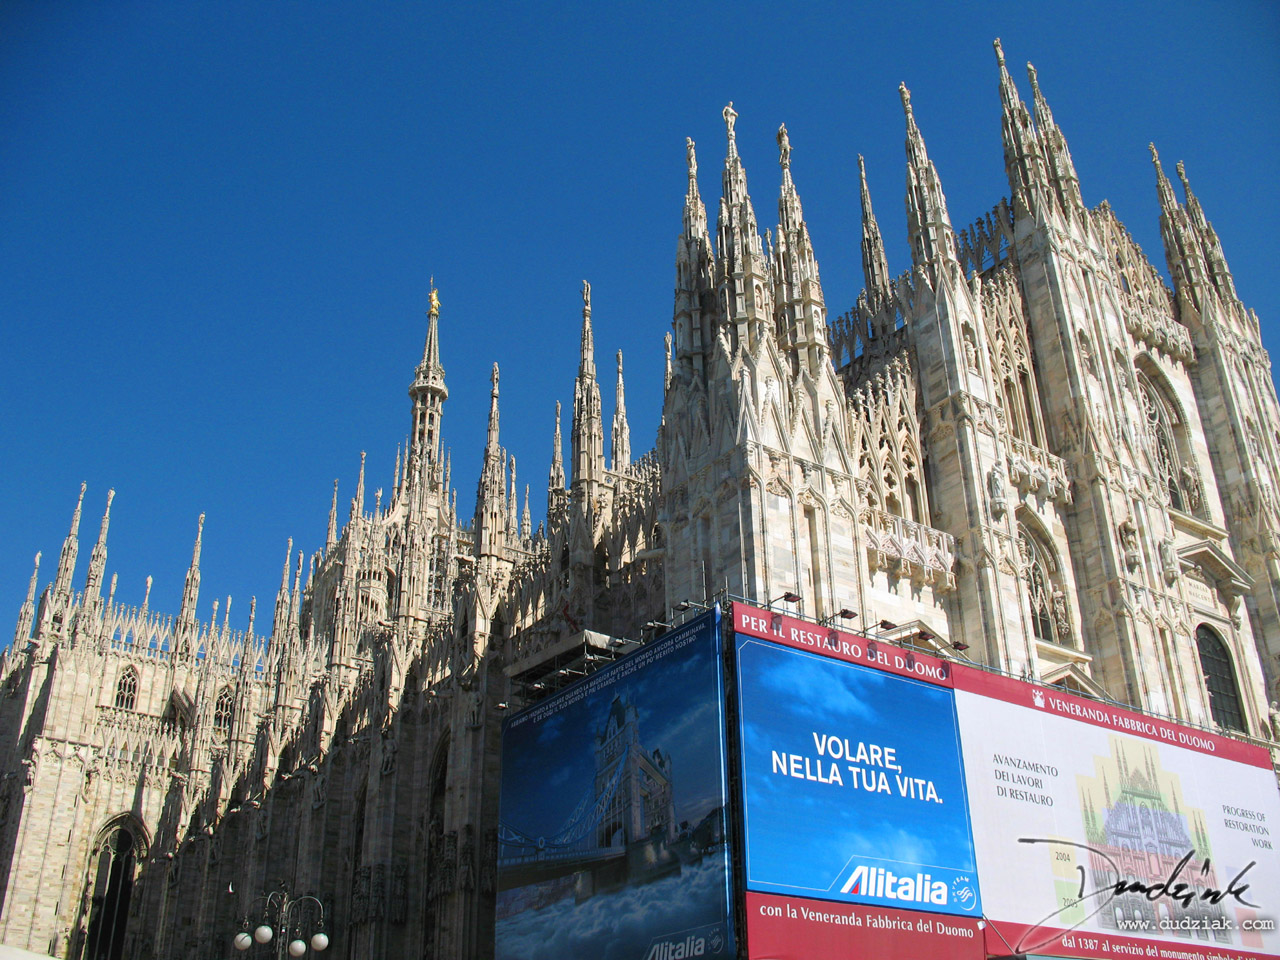 Picture of the gothic spires of the Cathedral of Milan